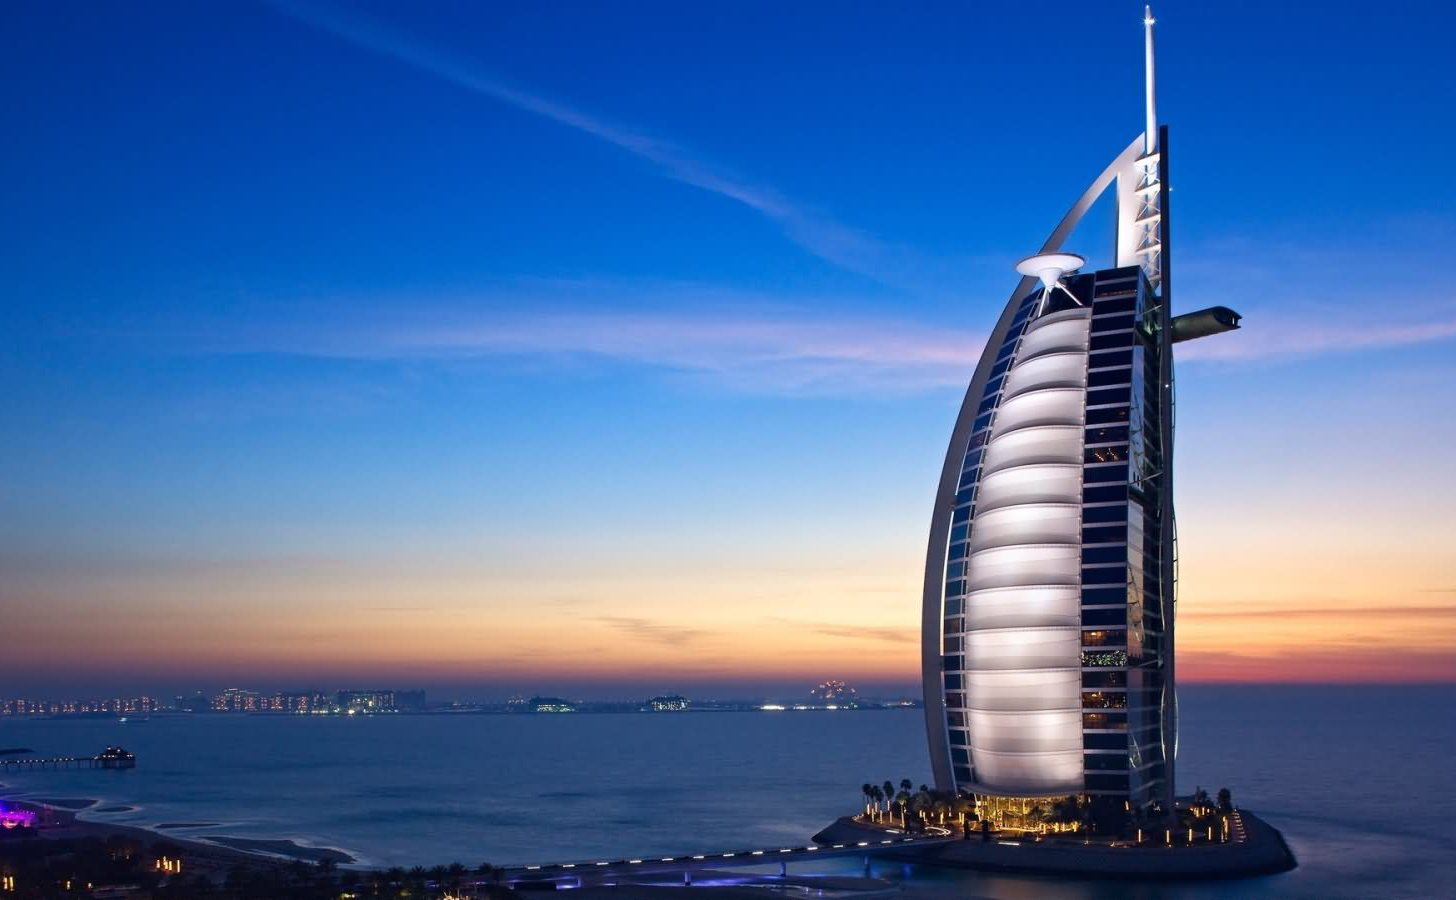 Amazing-Sunset-View-Of-The-Burj-Al-Arab